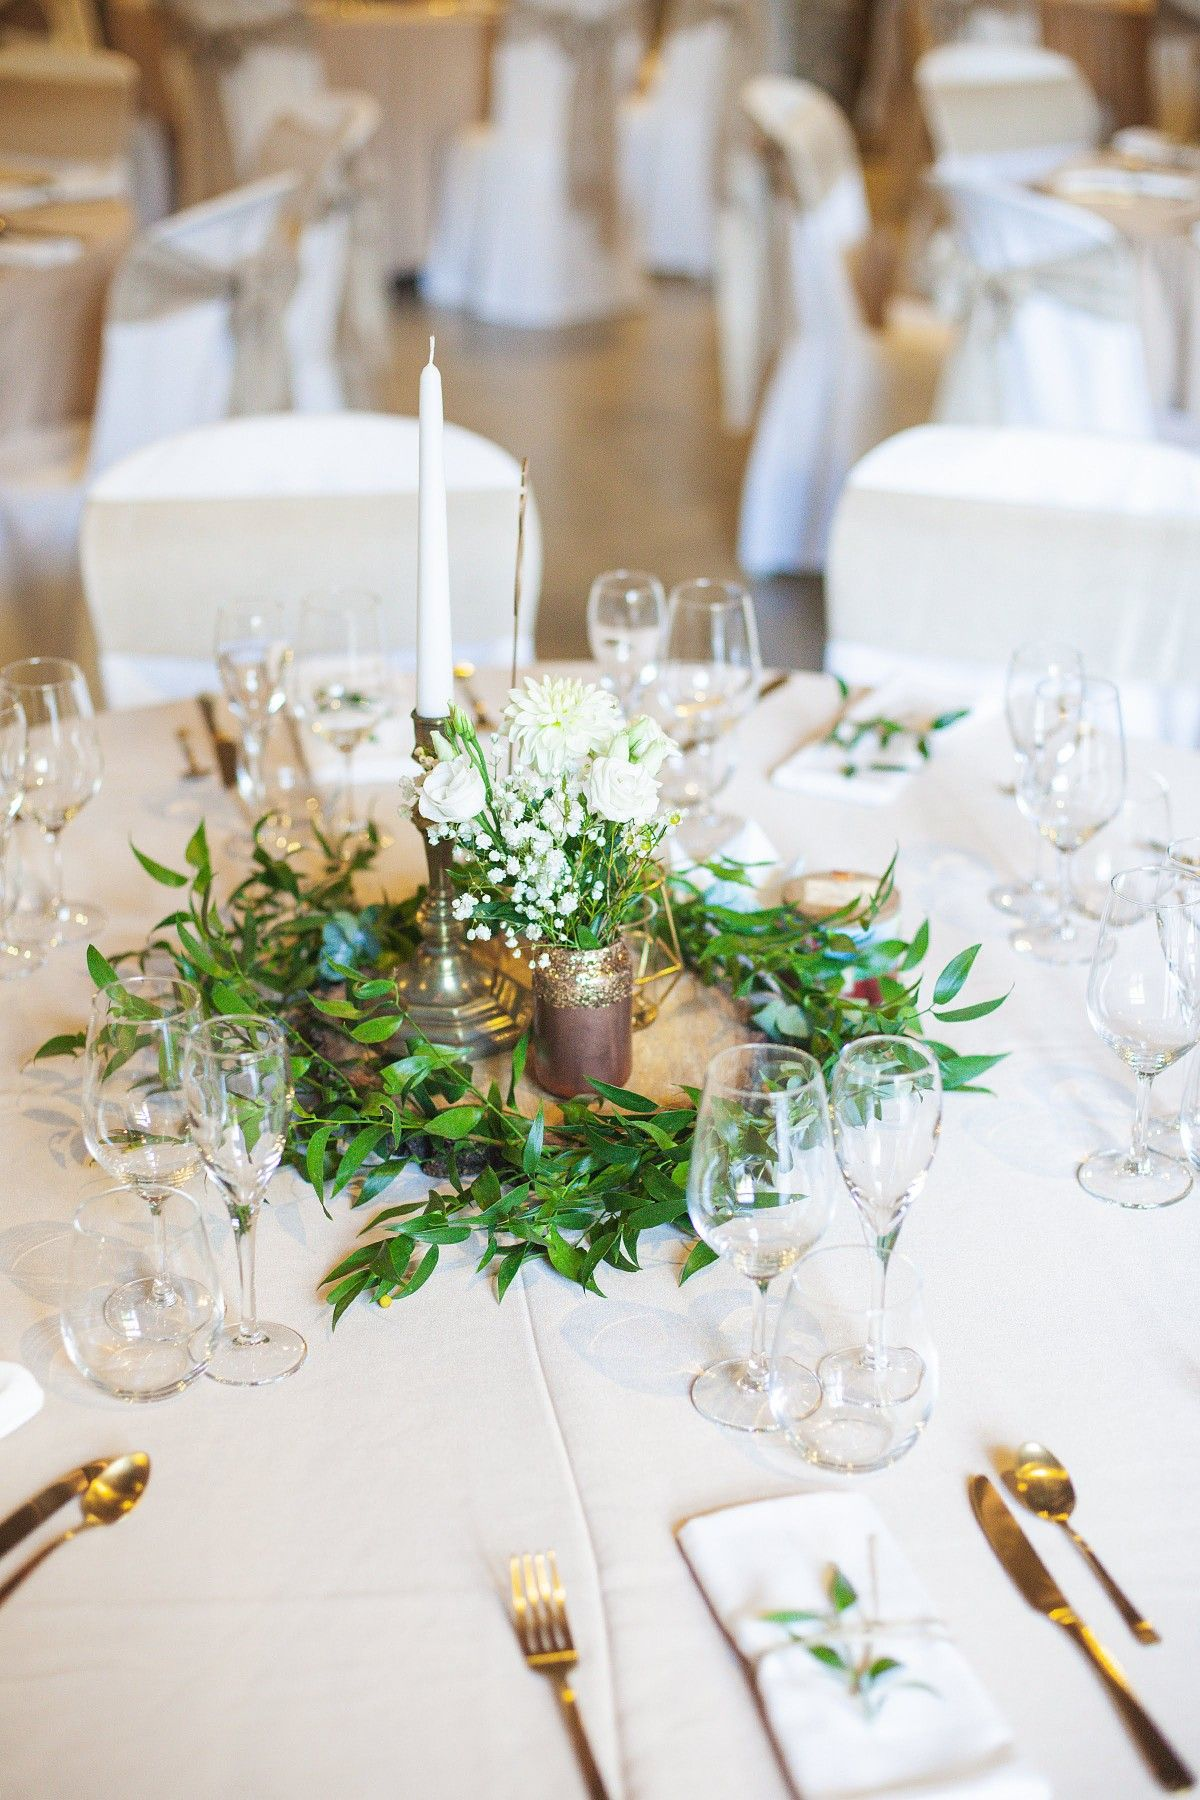 Mariage Champetre Chic En 2020 Mariages Champetre Chic Mariage